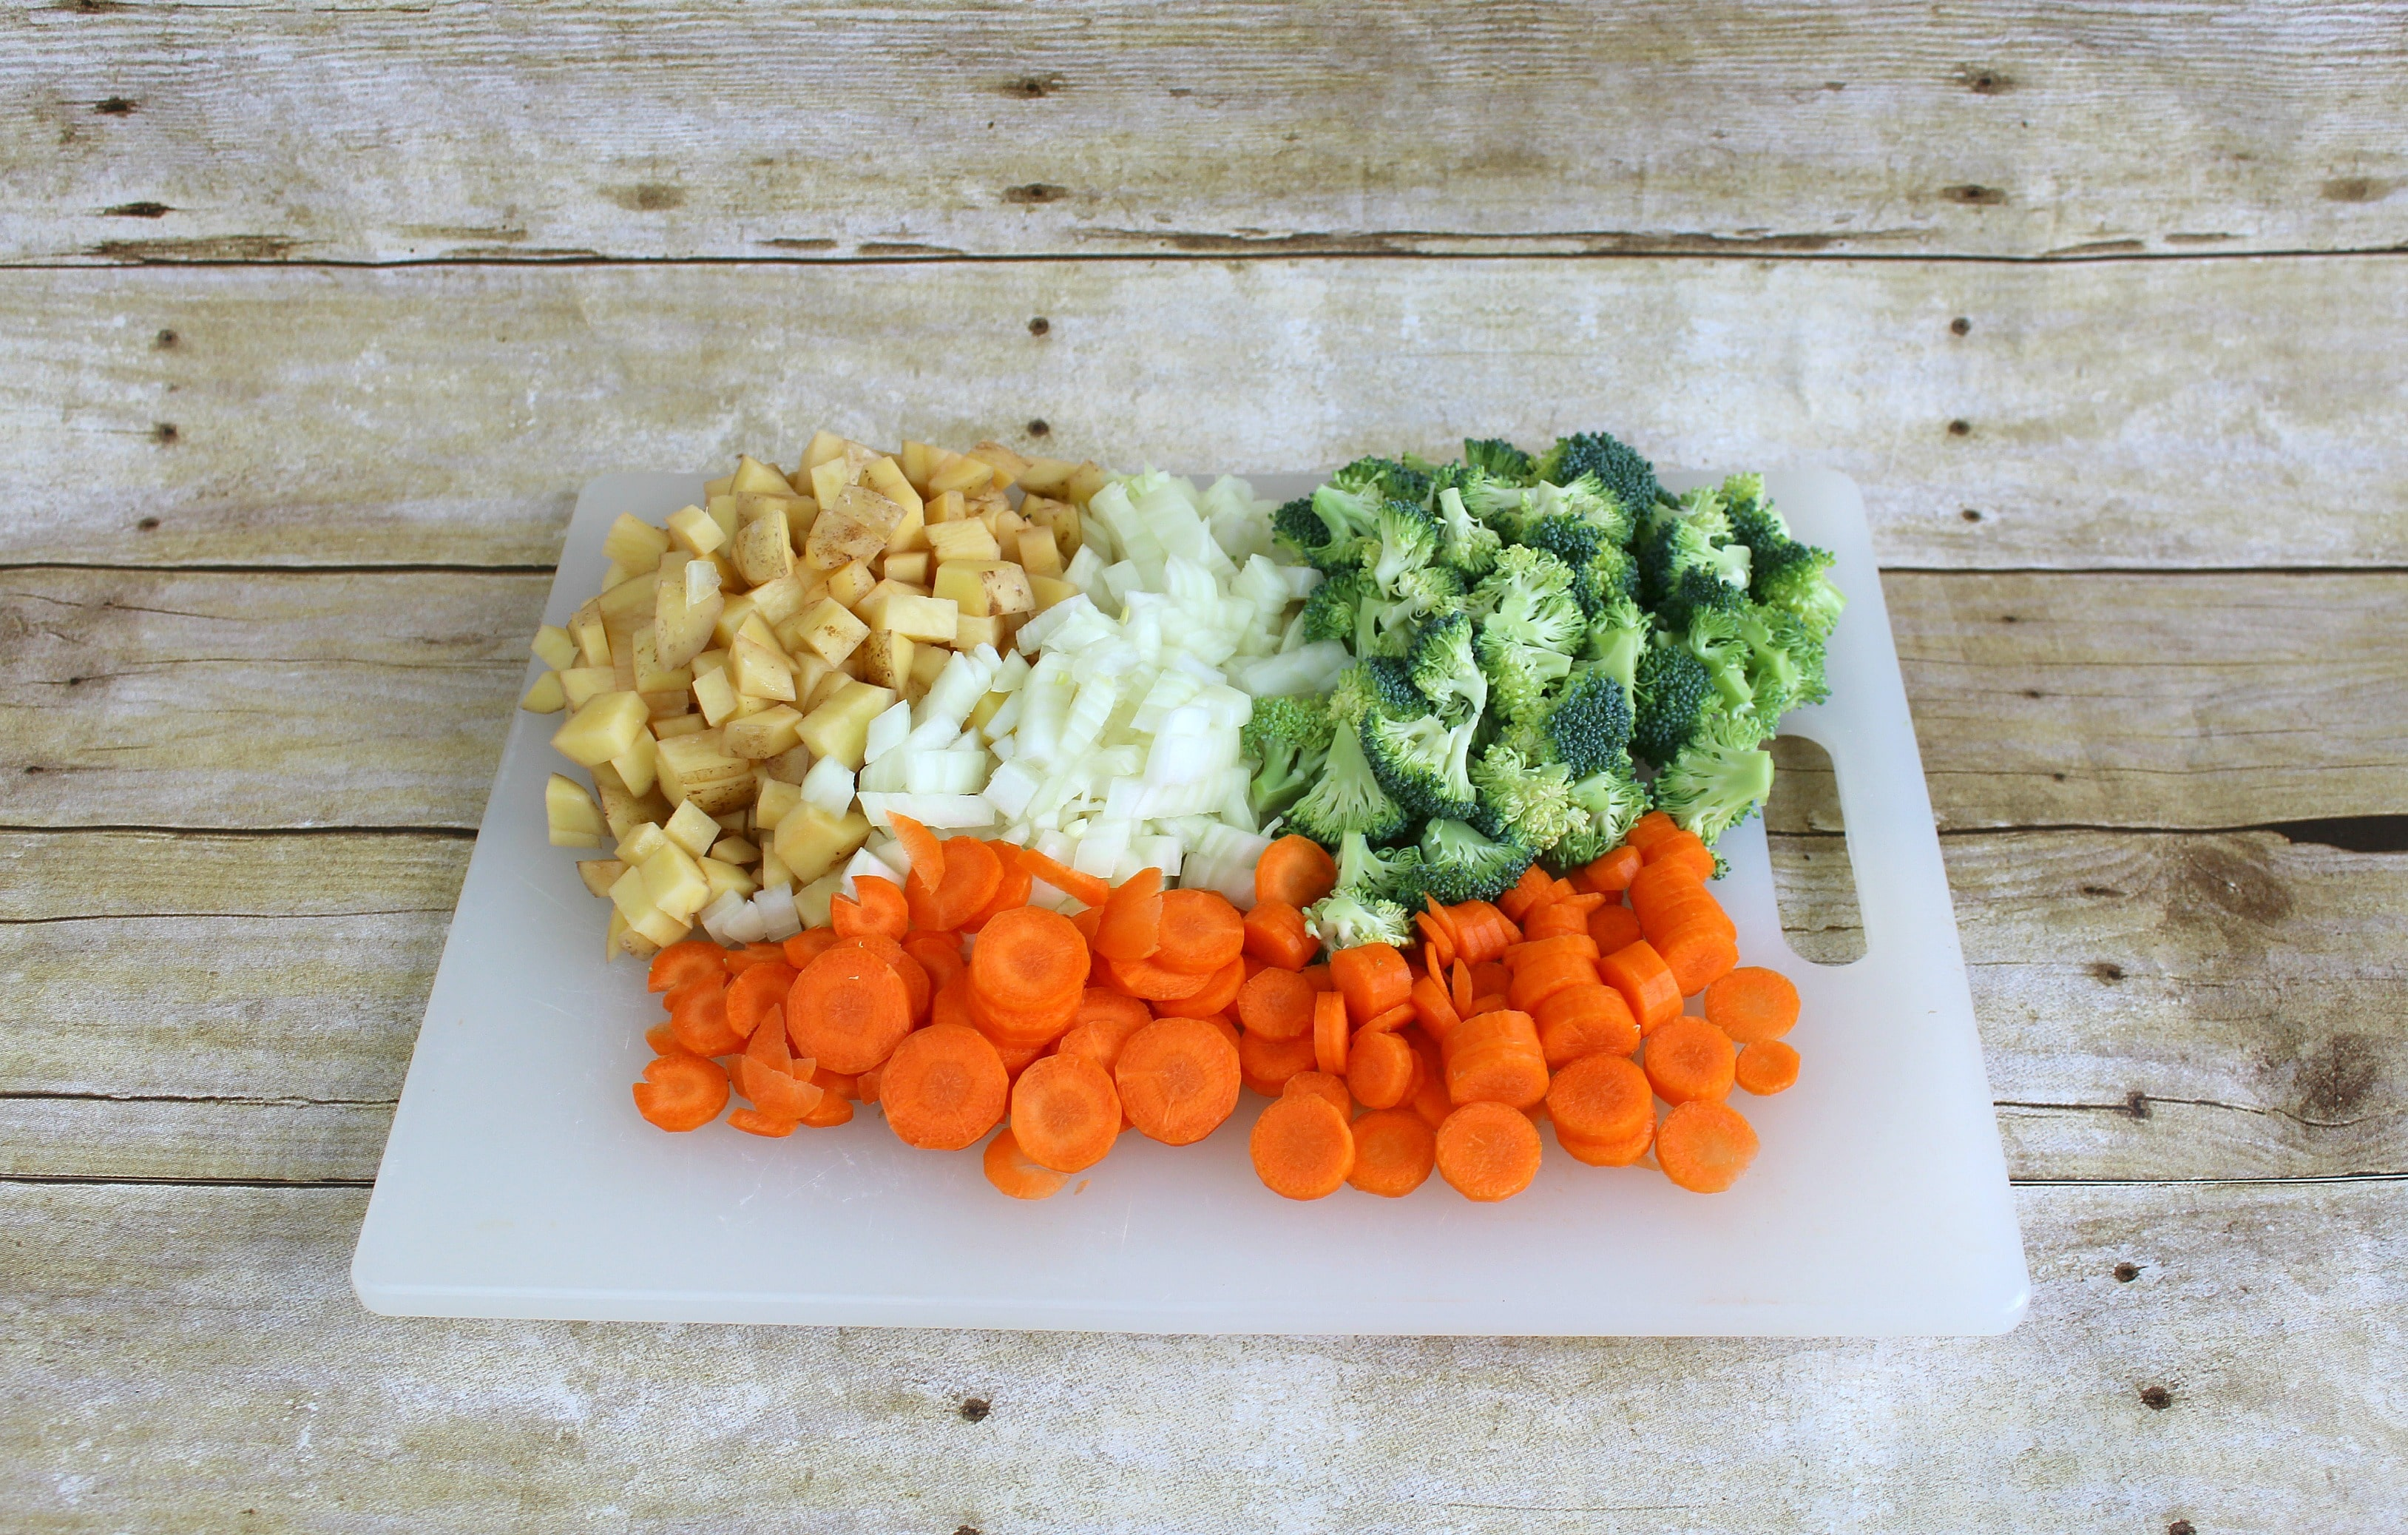 Step 1 of the Roasted Vegetable Pot Pie Pockets recipe is to chop the vegetables.